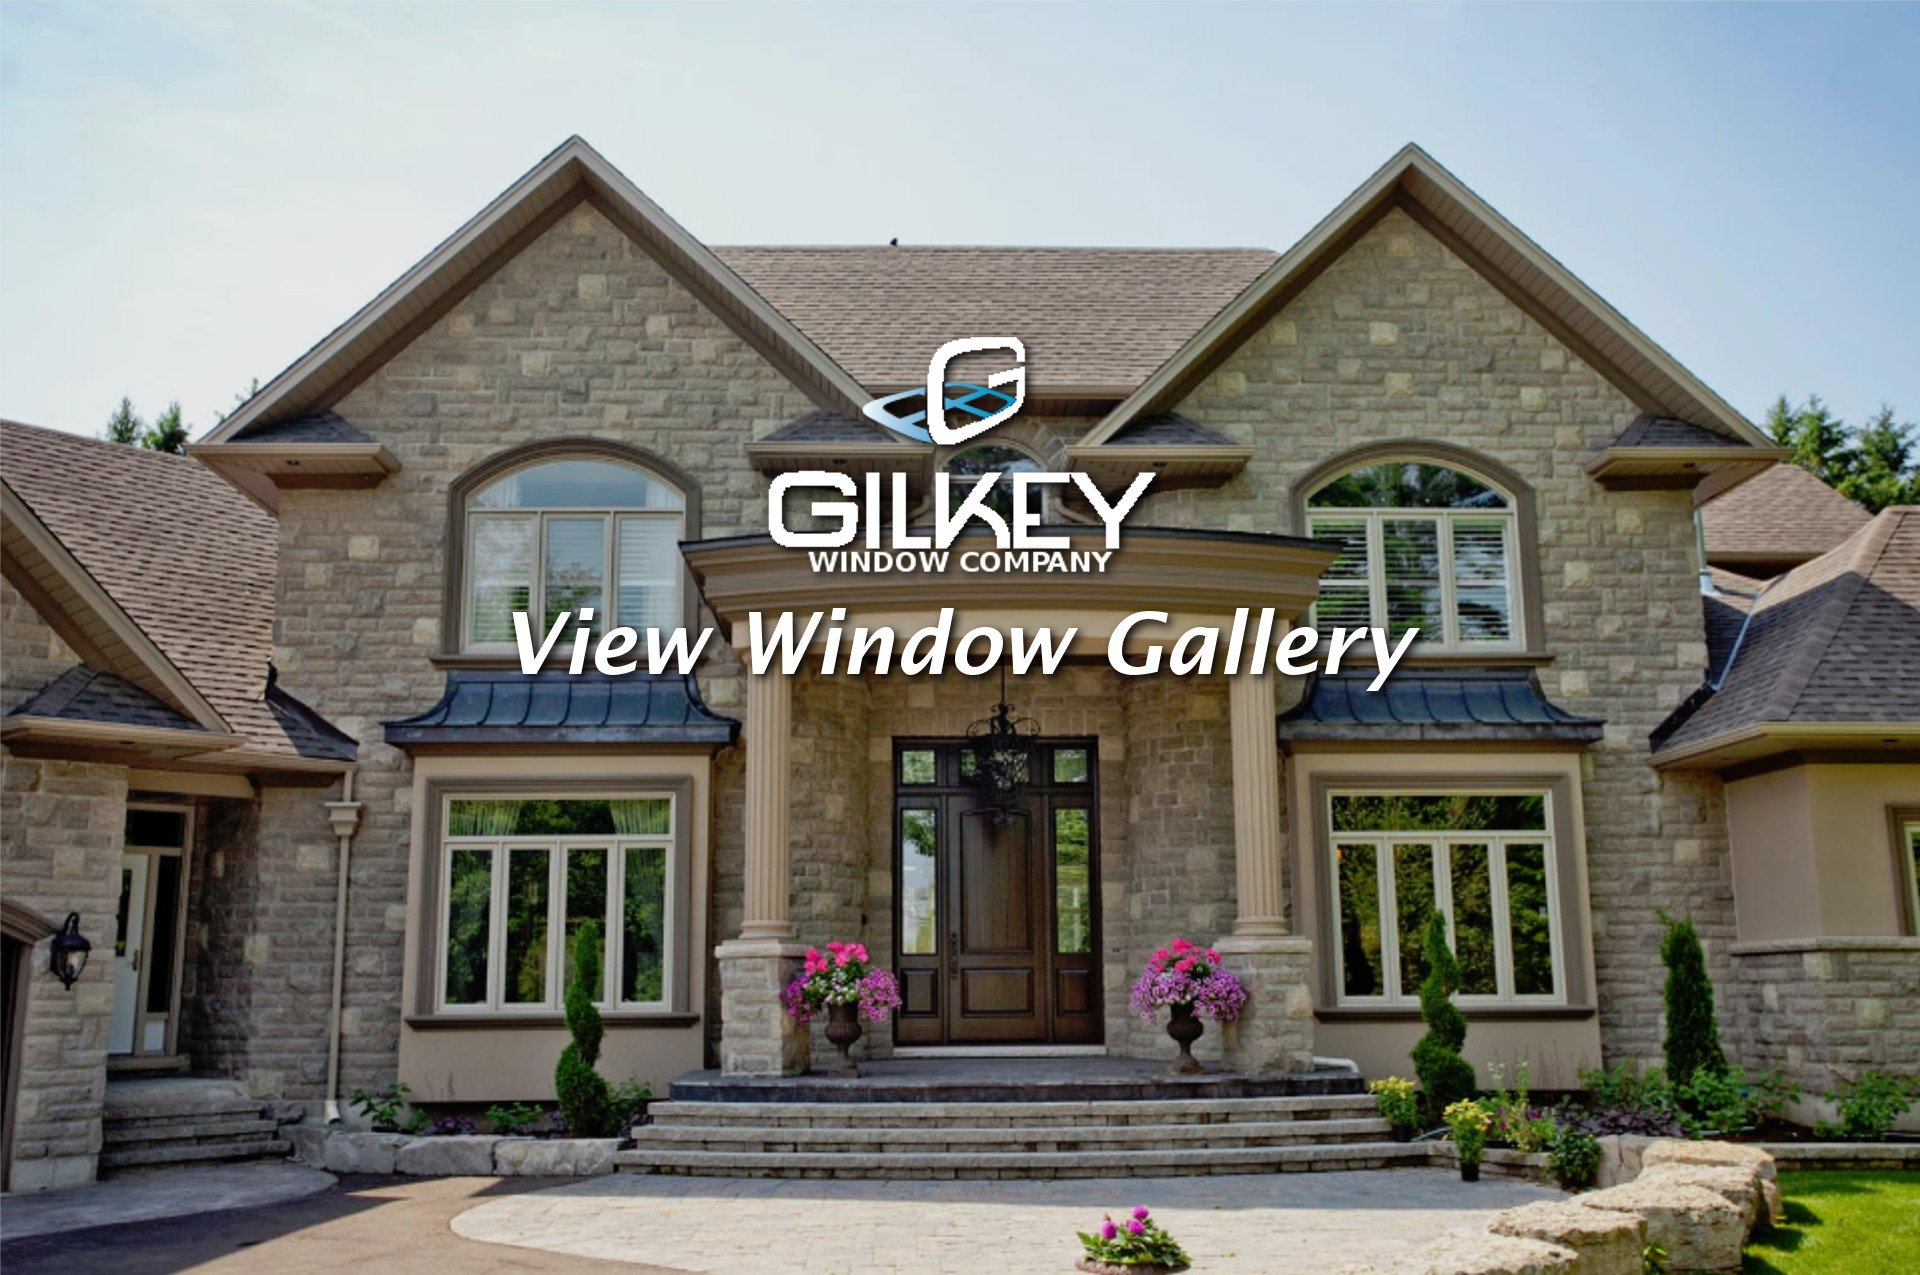 view window gallery-1